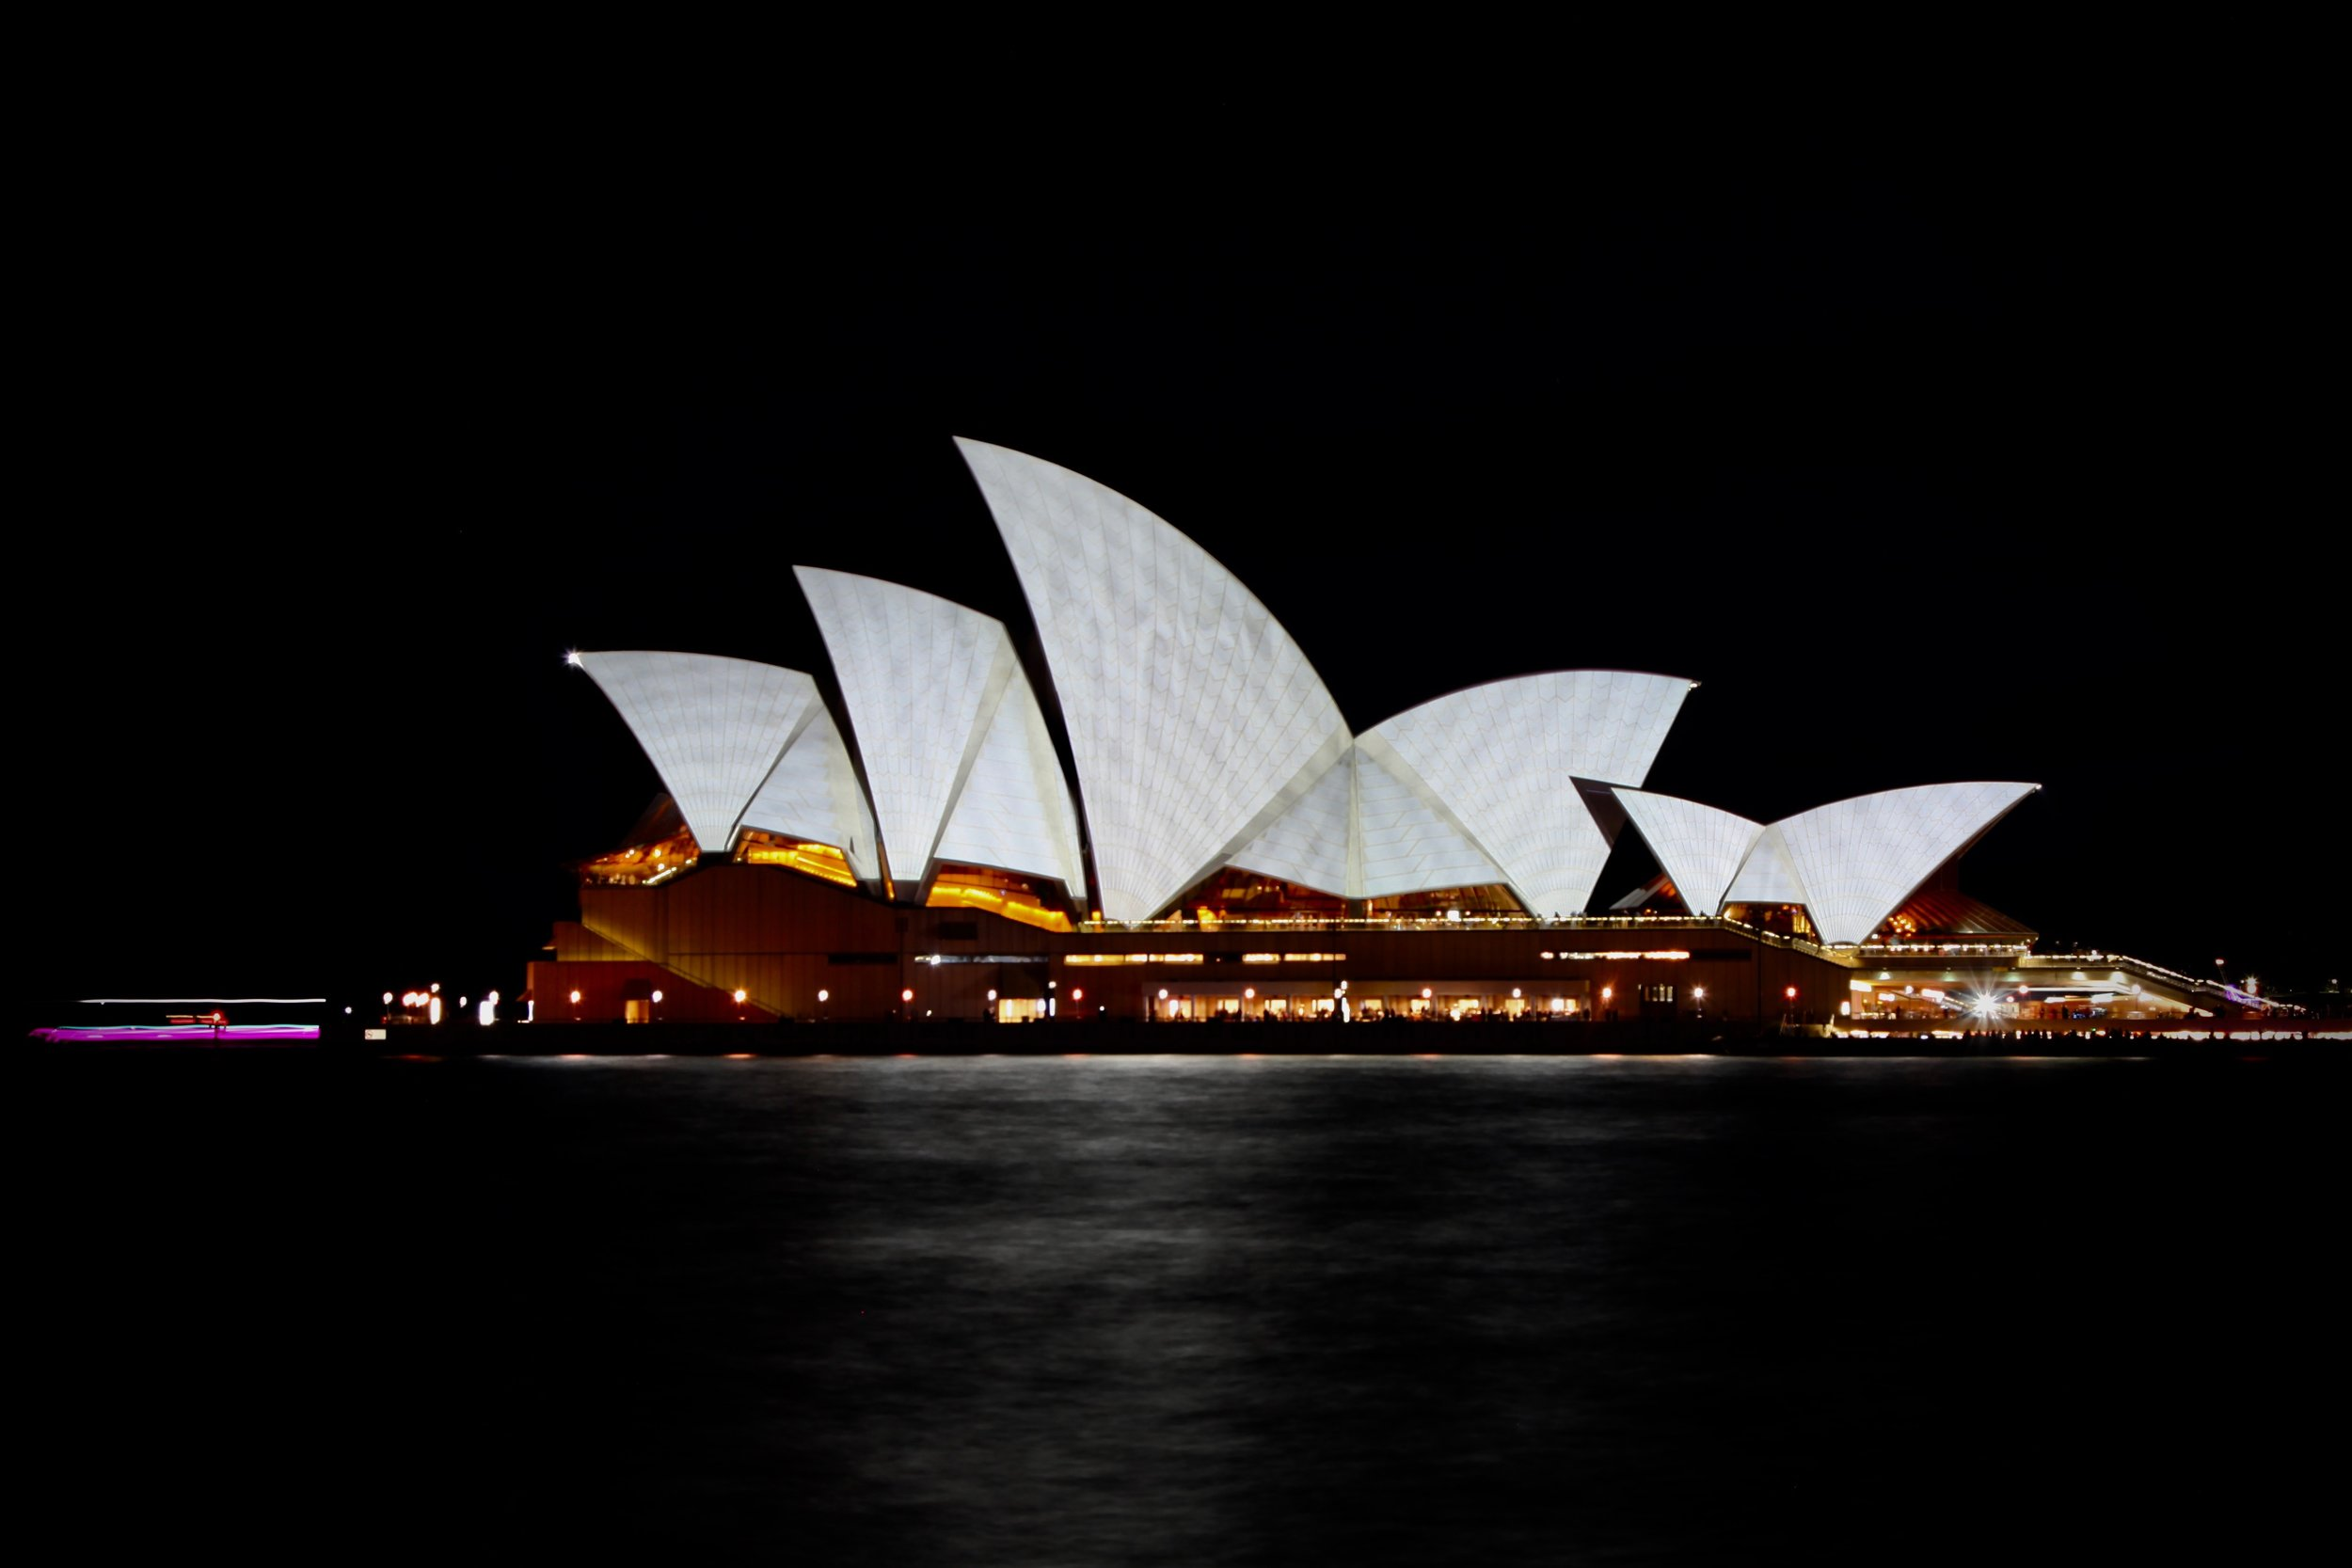 The Sydney Opera House lit up during the annual Vivid festival.